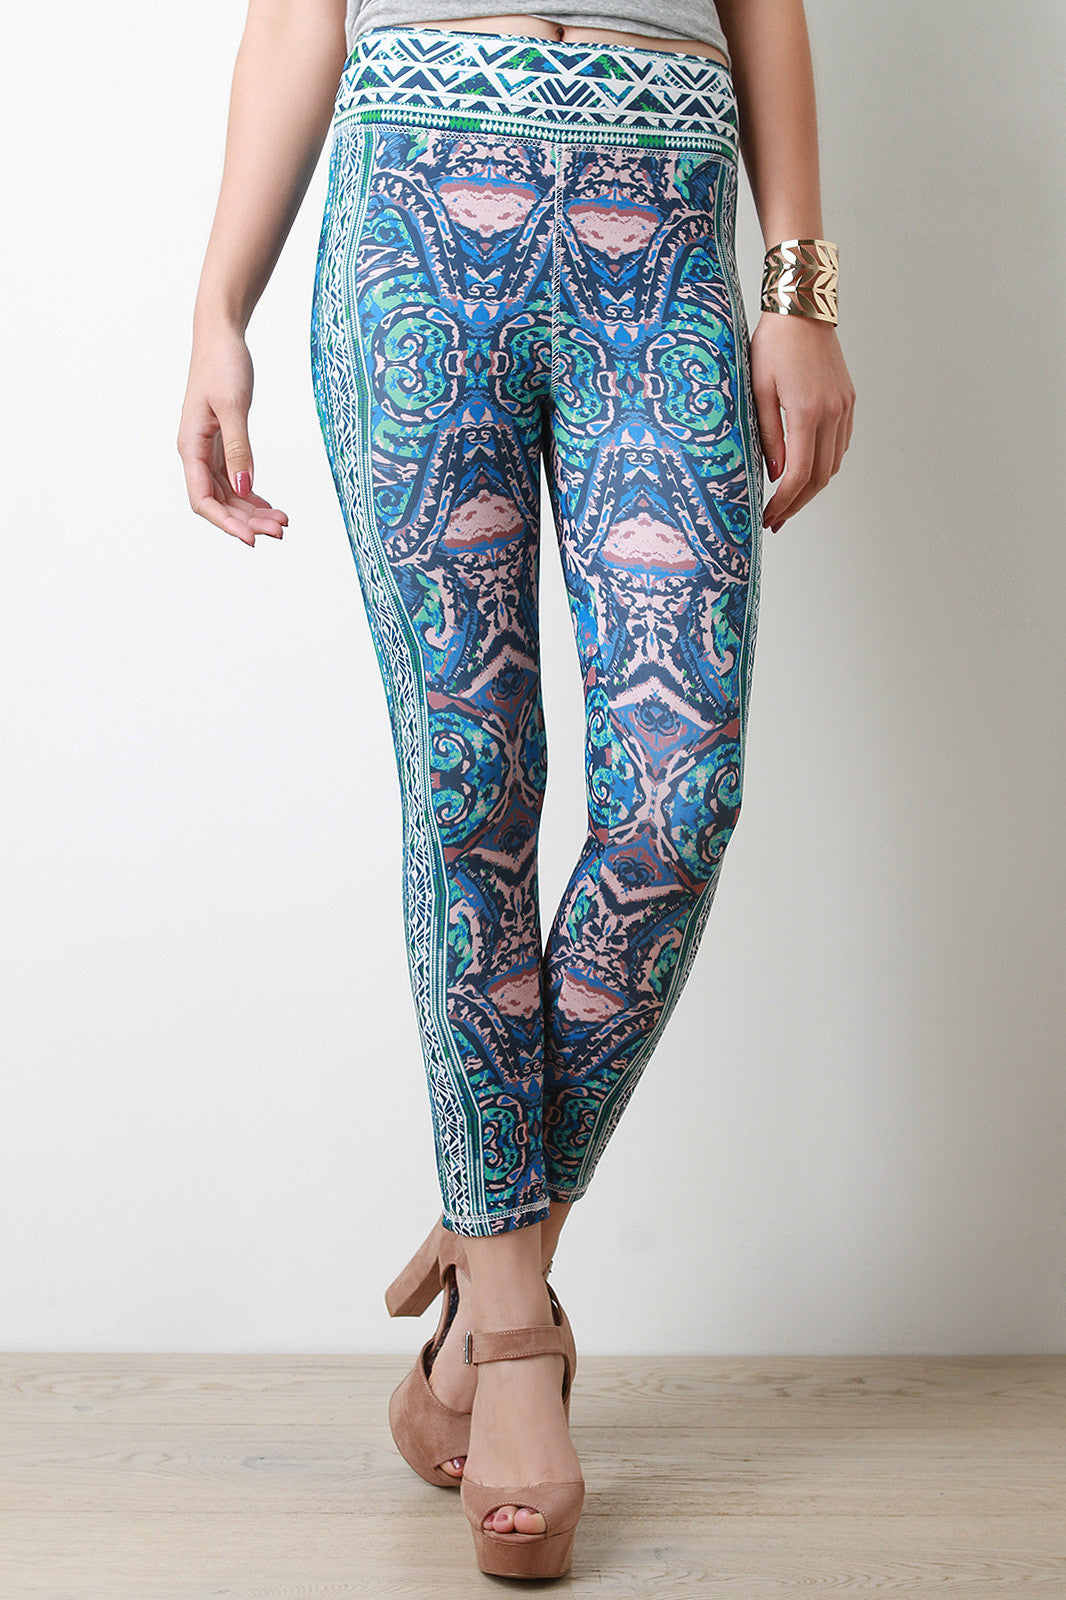 Shop Tribal Inkblot Leggings - Thick 'N' Curvy Shop - 2